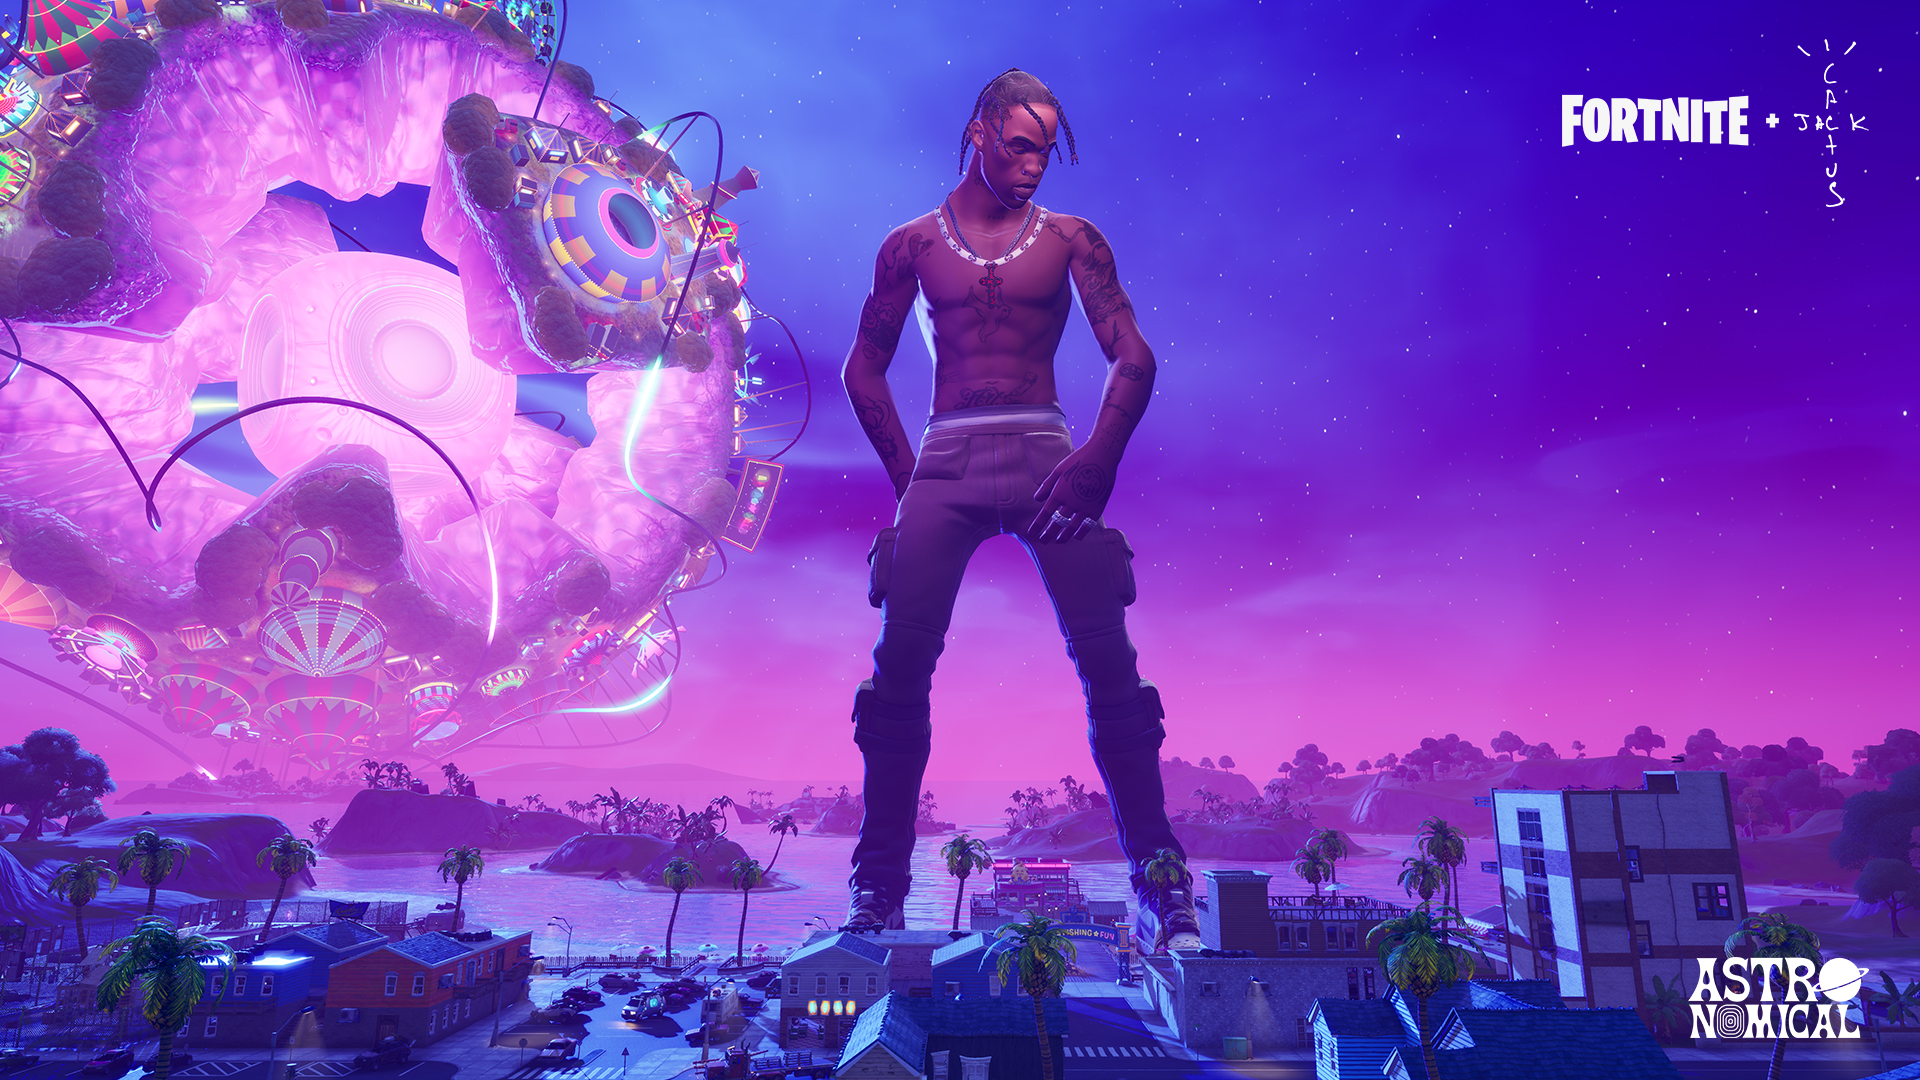 Fortnite On Twitter Thank You To Everyone Who Attended And Created Content Around The Travis Scott Event Over 27 7 Million Unique Players In Game Participated Live 45 8 Million Times Across The Five Events #travisscott #kidcudi #fortnite #astronomical #thescotts #fortnitetravisscottevent. travis scott event